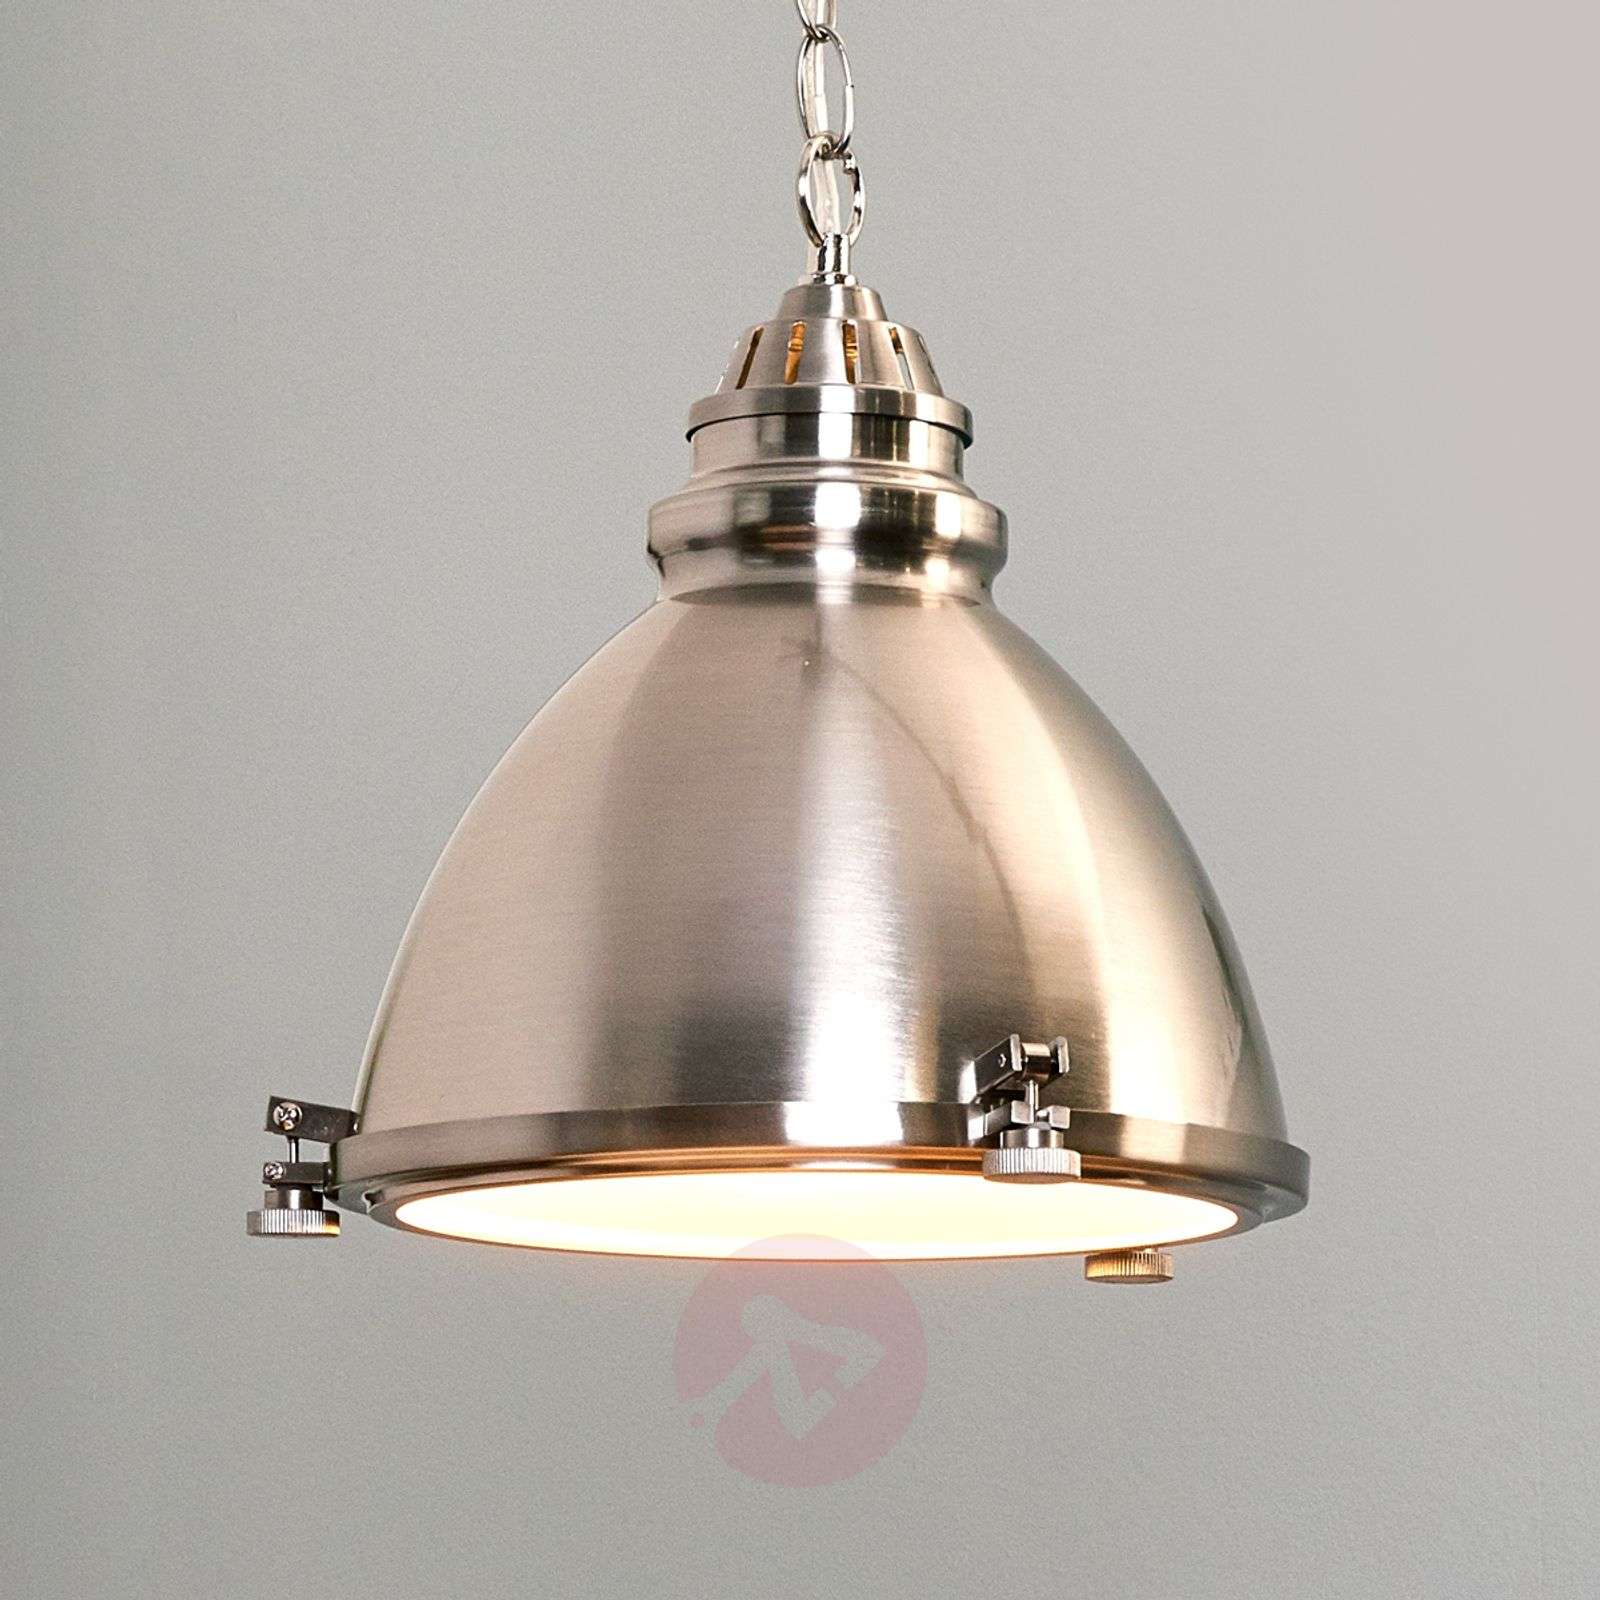 Kalen industrially-designed hanging light-8570590-011